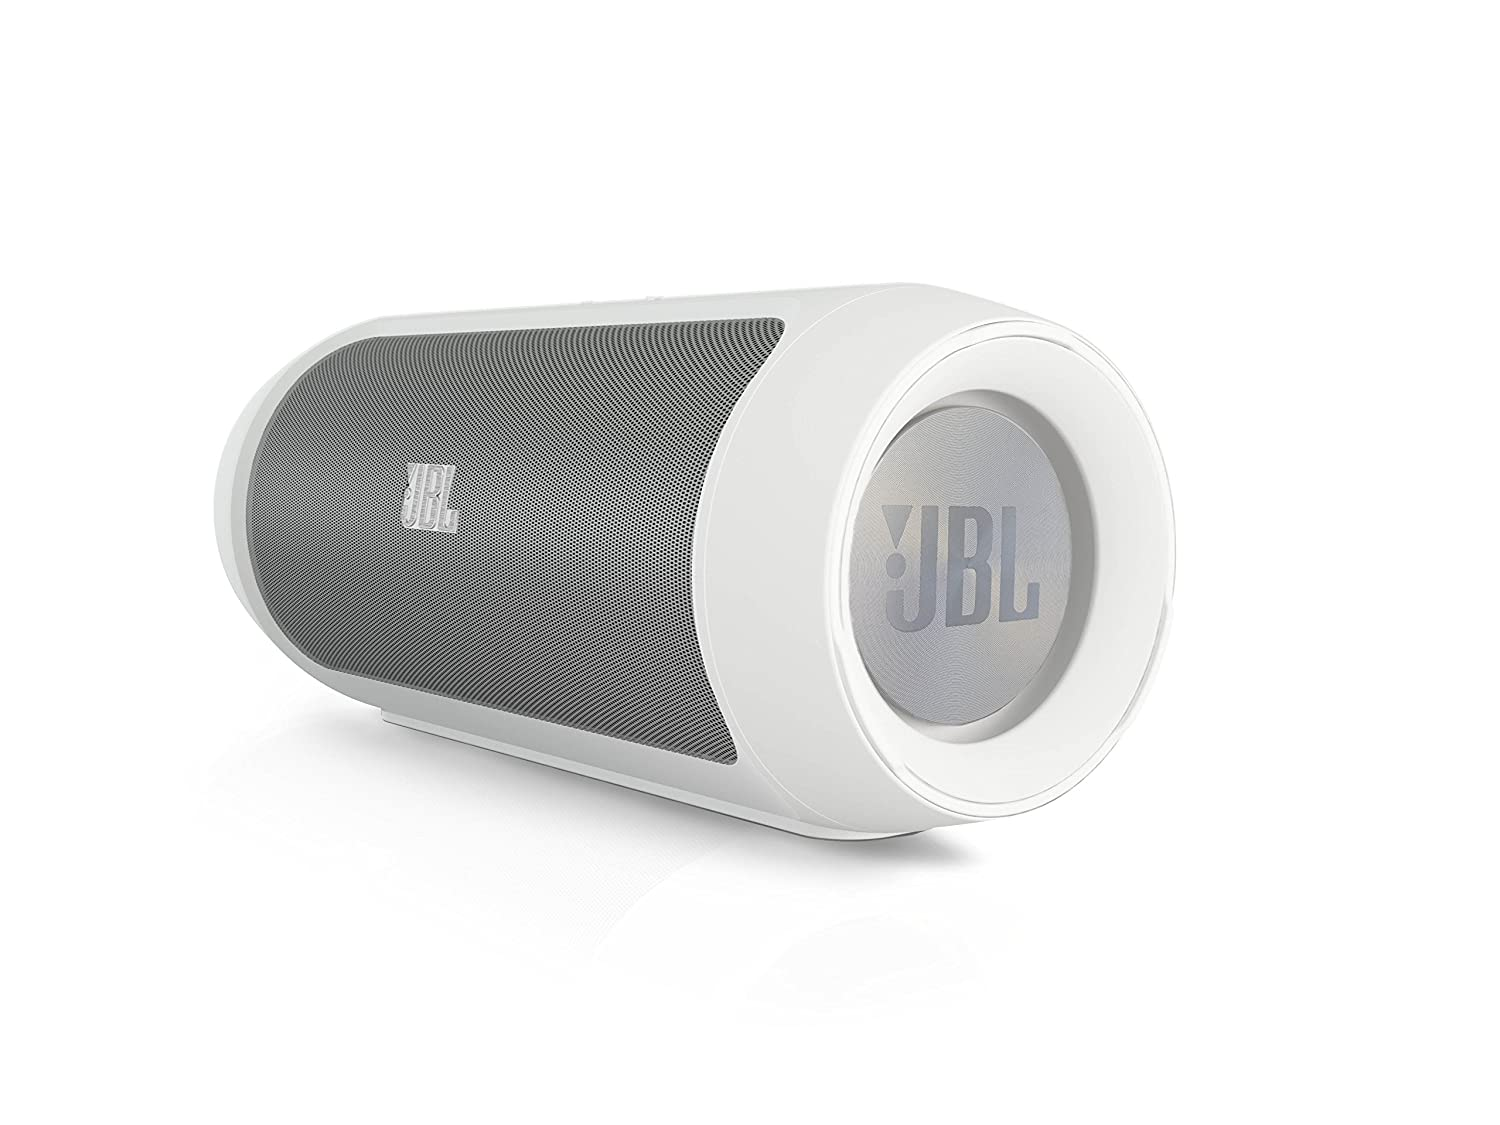 JBL Charge 2 Portable Wireless Bluetooth Speaker with Built-In Mic and PowerBank jbl charge 2 orange